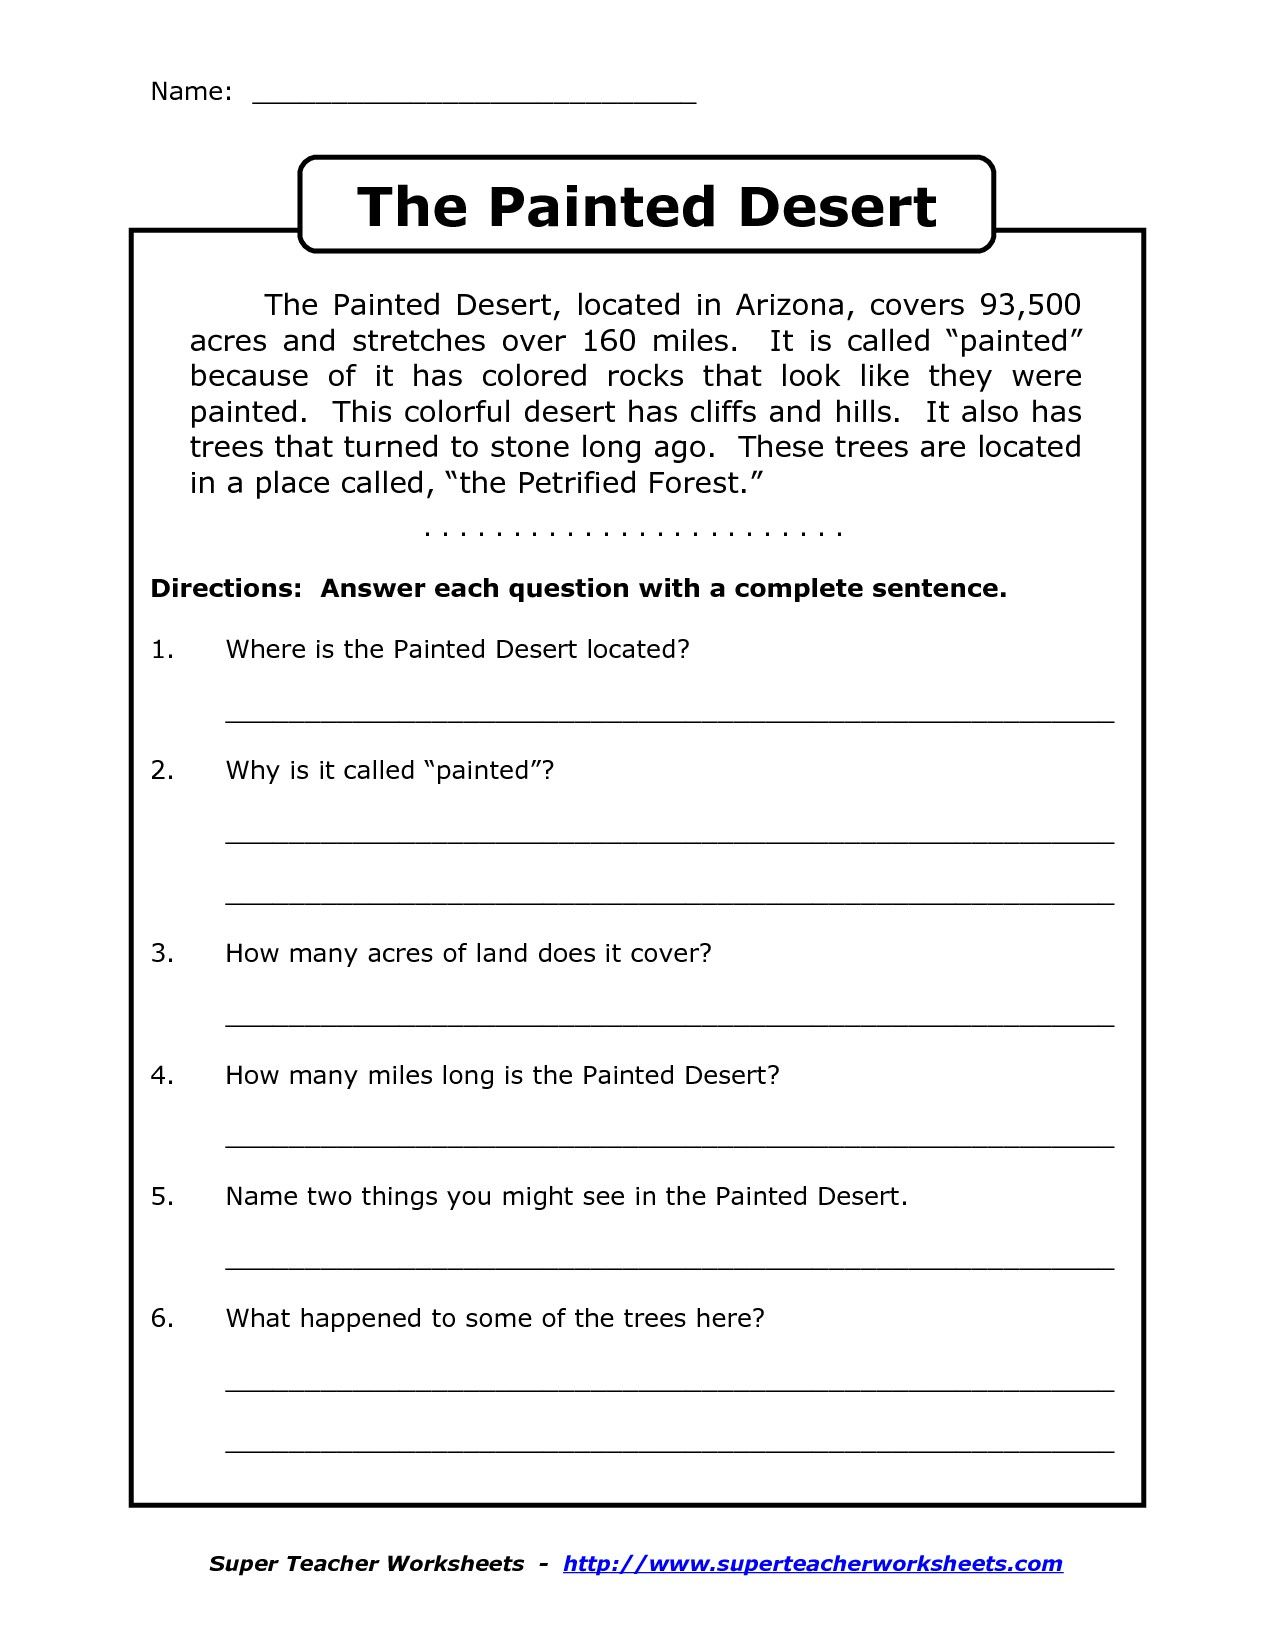 Worksheets Social Studies Reading Comprehension Worksheets comprehension worksheet for 1st grade y2p3 the painted desert social studies arizona